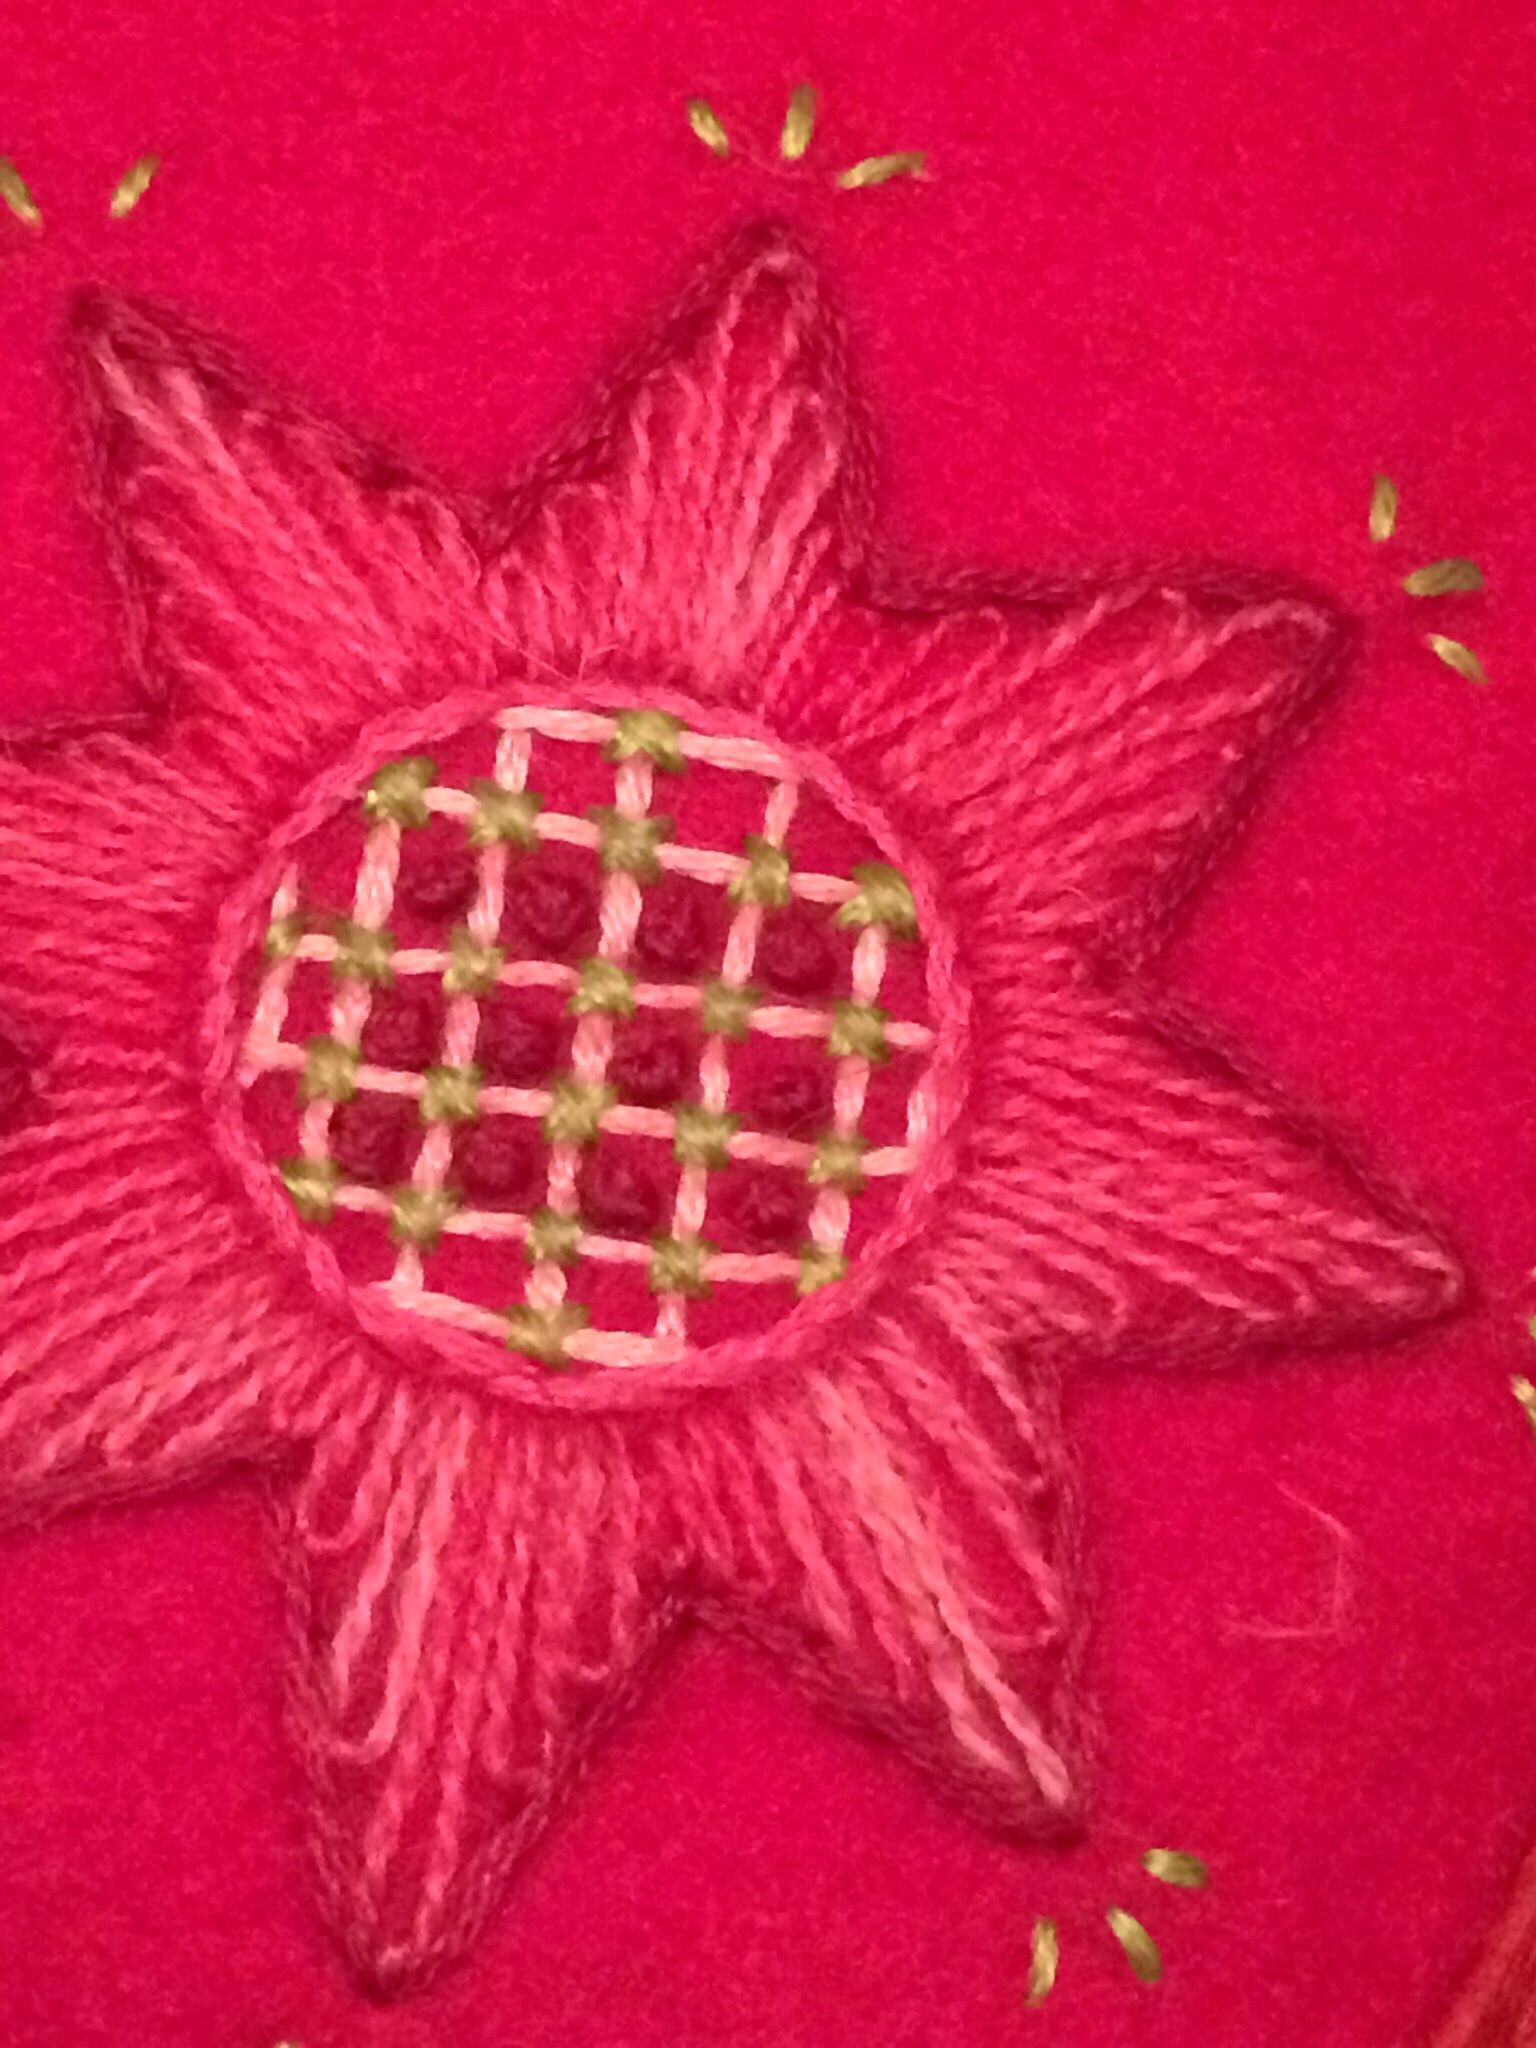 Detail of my latest wool embroidery